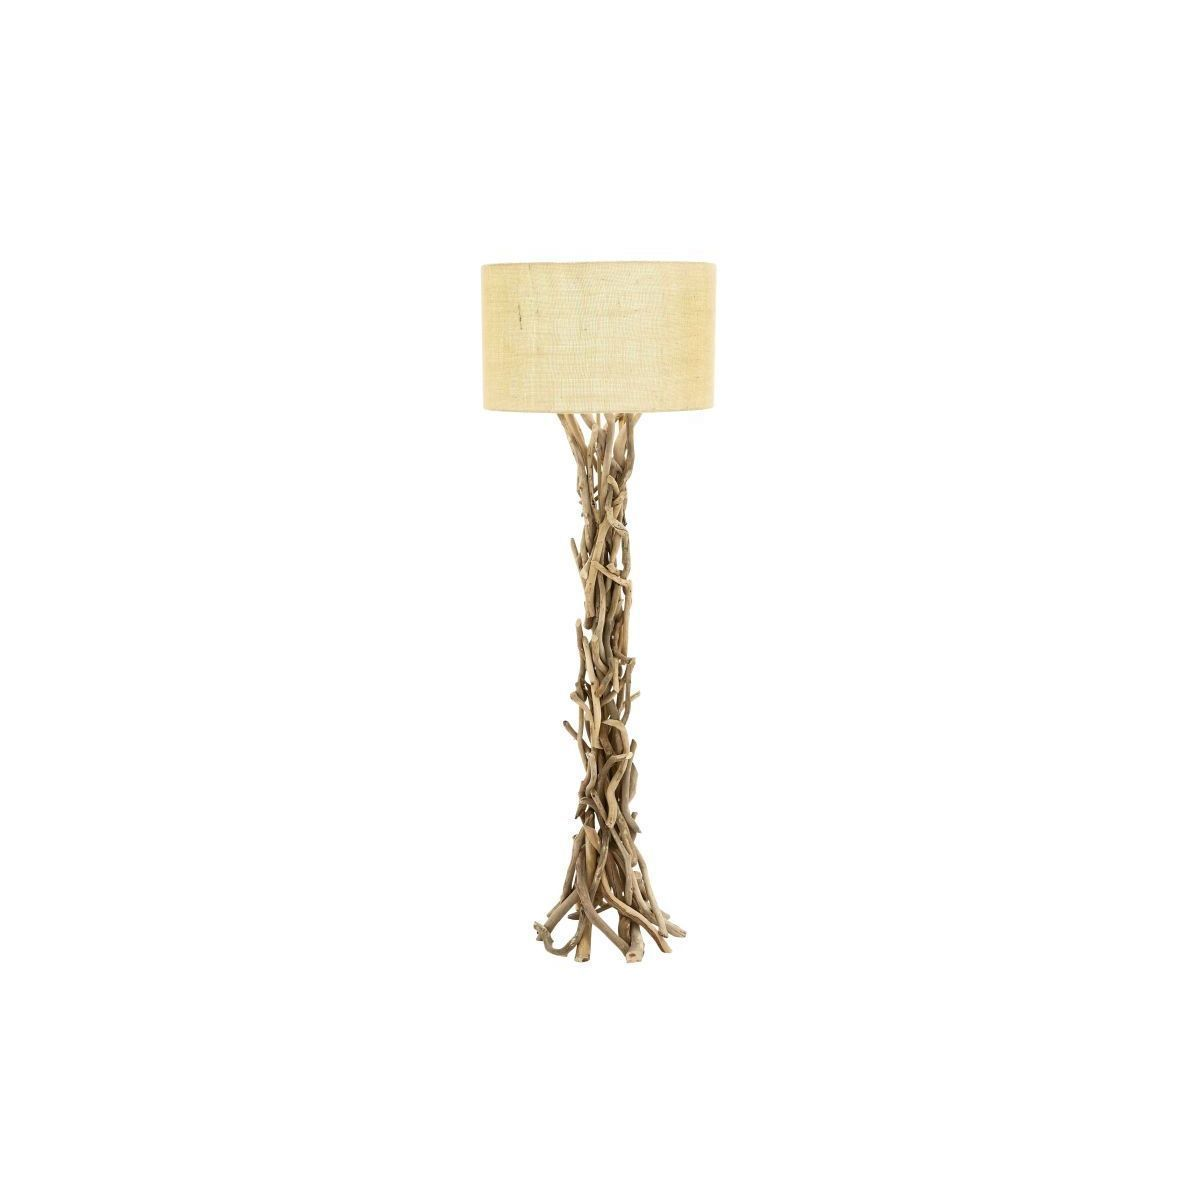 lamps brixham com branched driftwood doris original floor product lamp devondriftwood by notonthehighstreet